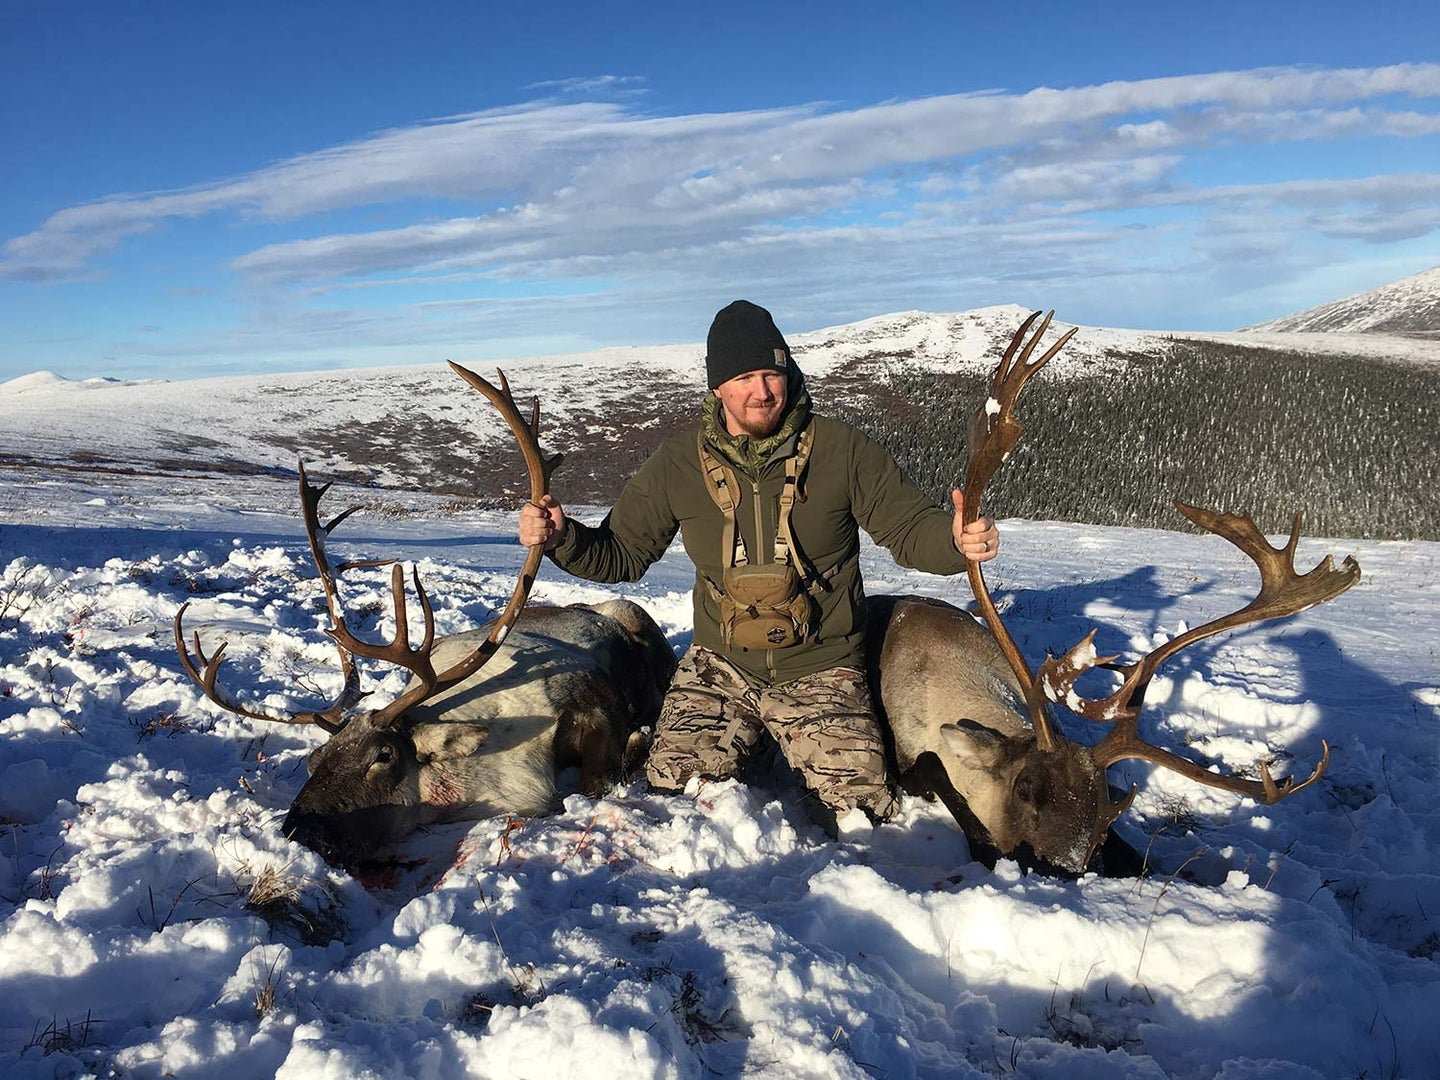 A hunter kneeling beside two large caribou in the snow.